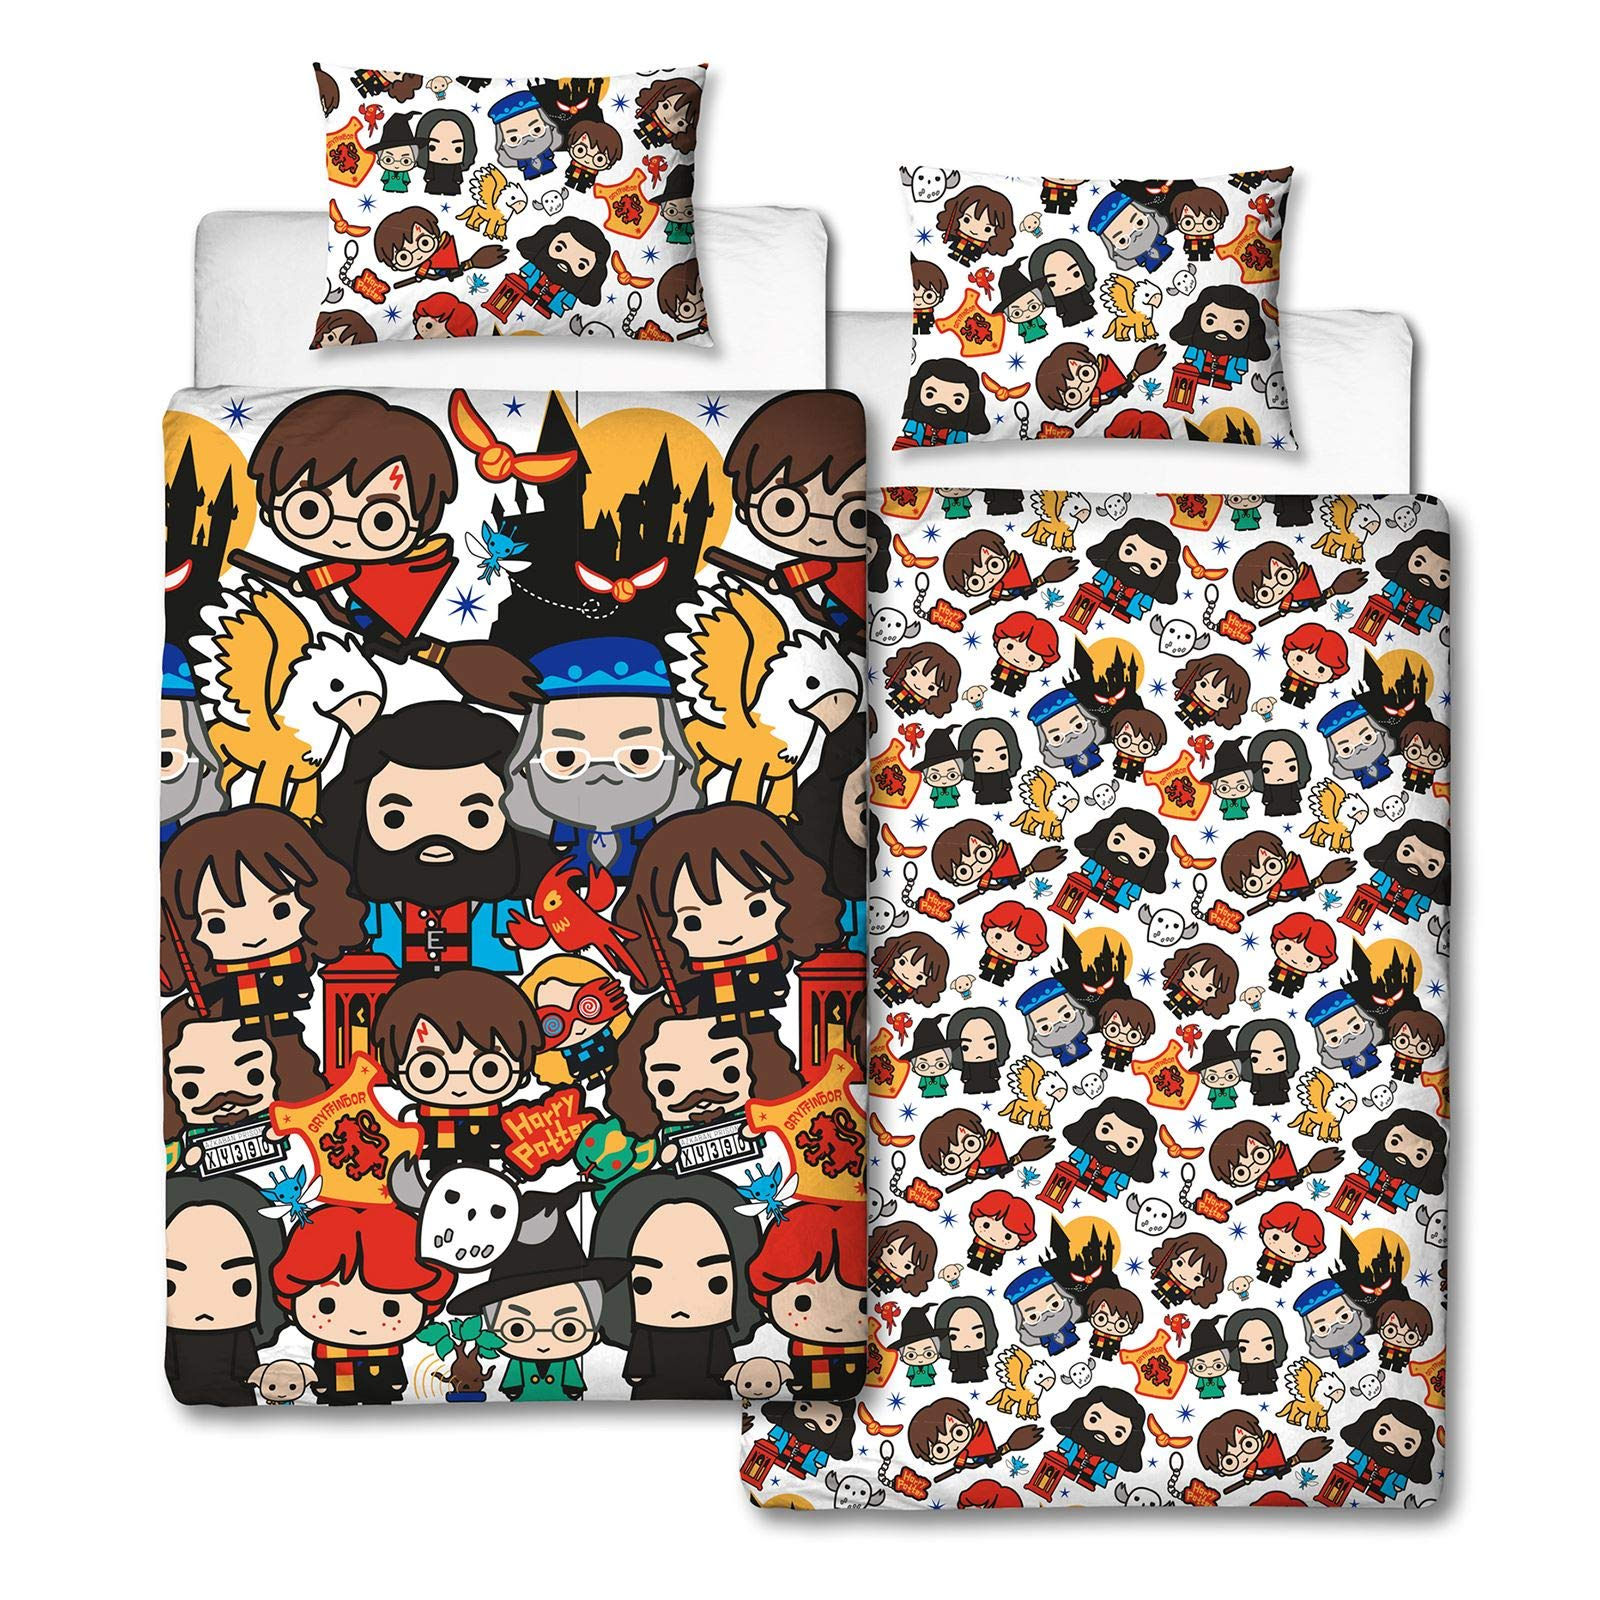 Harry Potter Charm UK Single/US Twin Unfilled Duvet Cover and Pillowcase Set